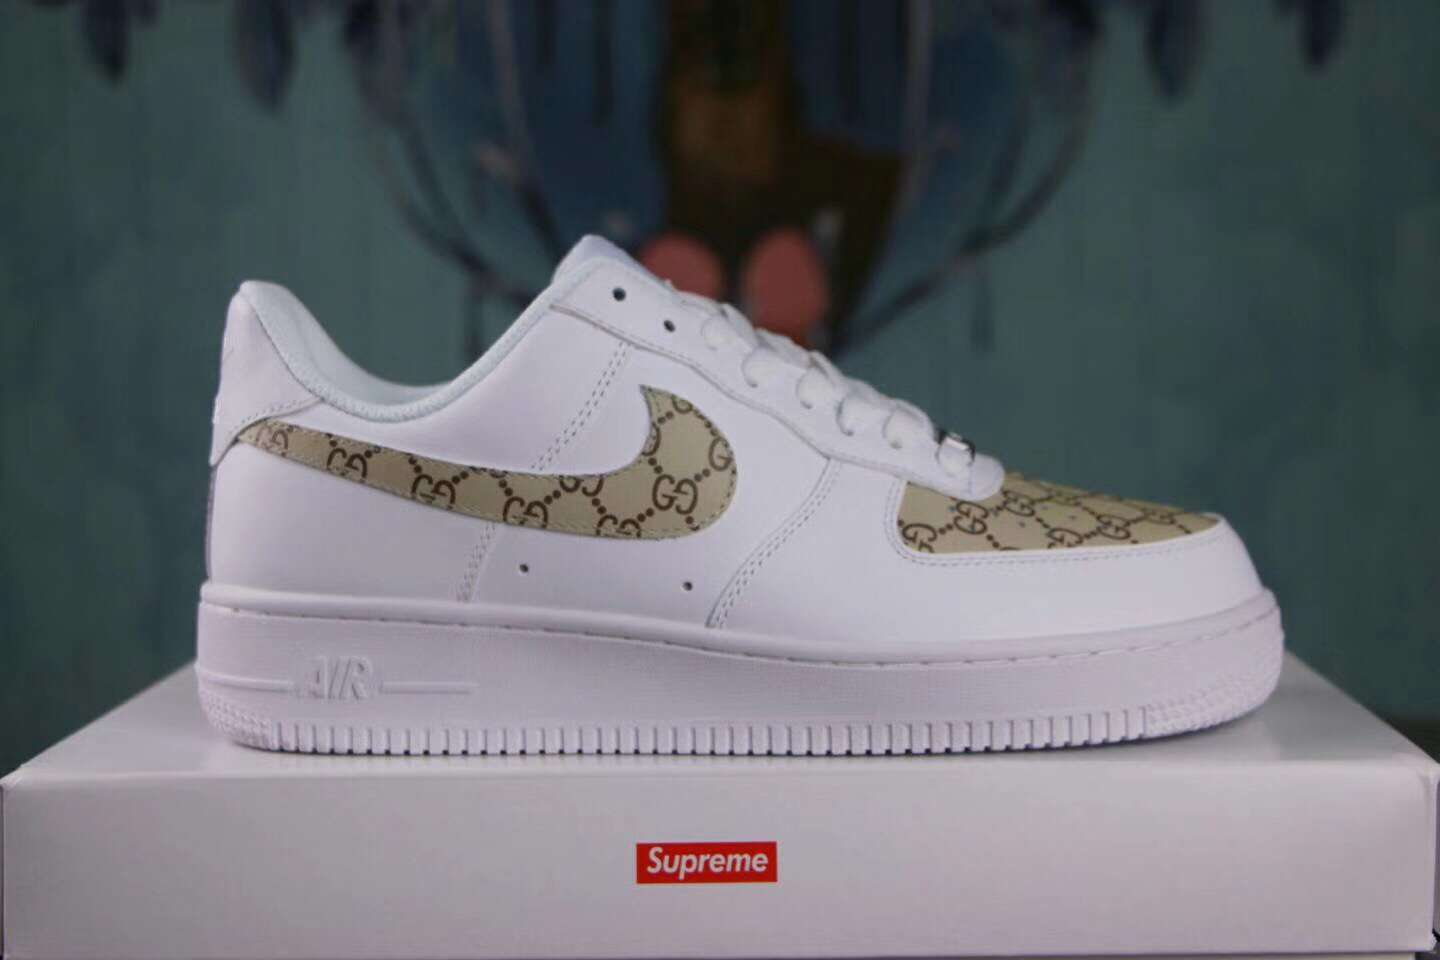 Force Lifestyle Custom Sepsport Air Sup Nike Gold White Shoes Low 1 I5x4q